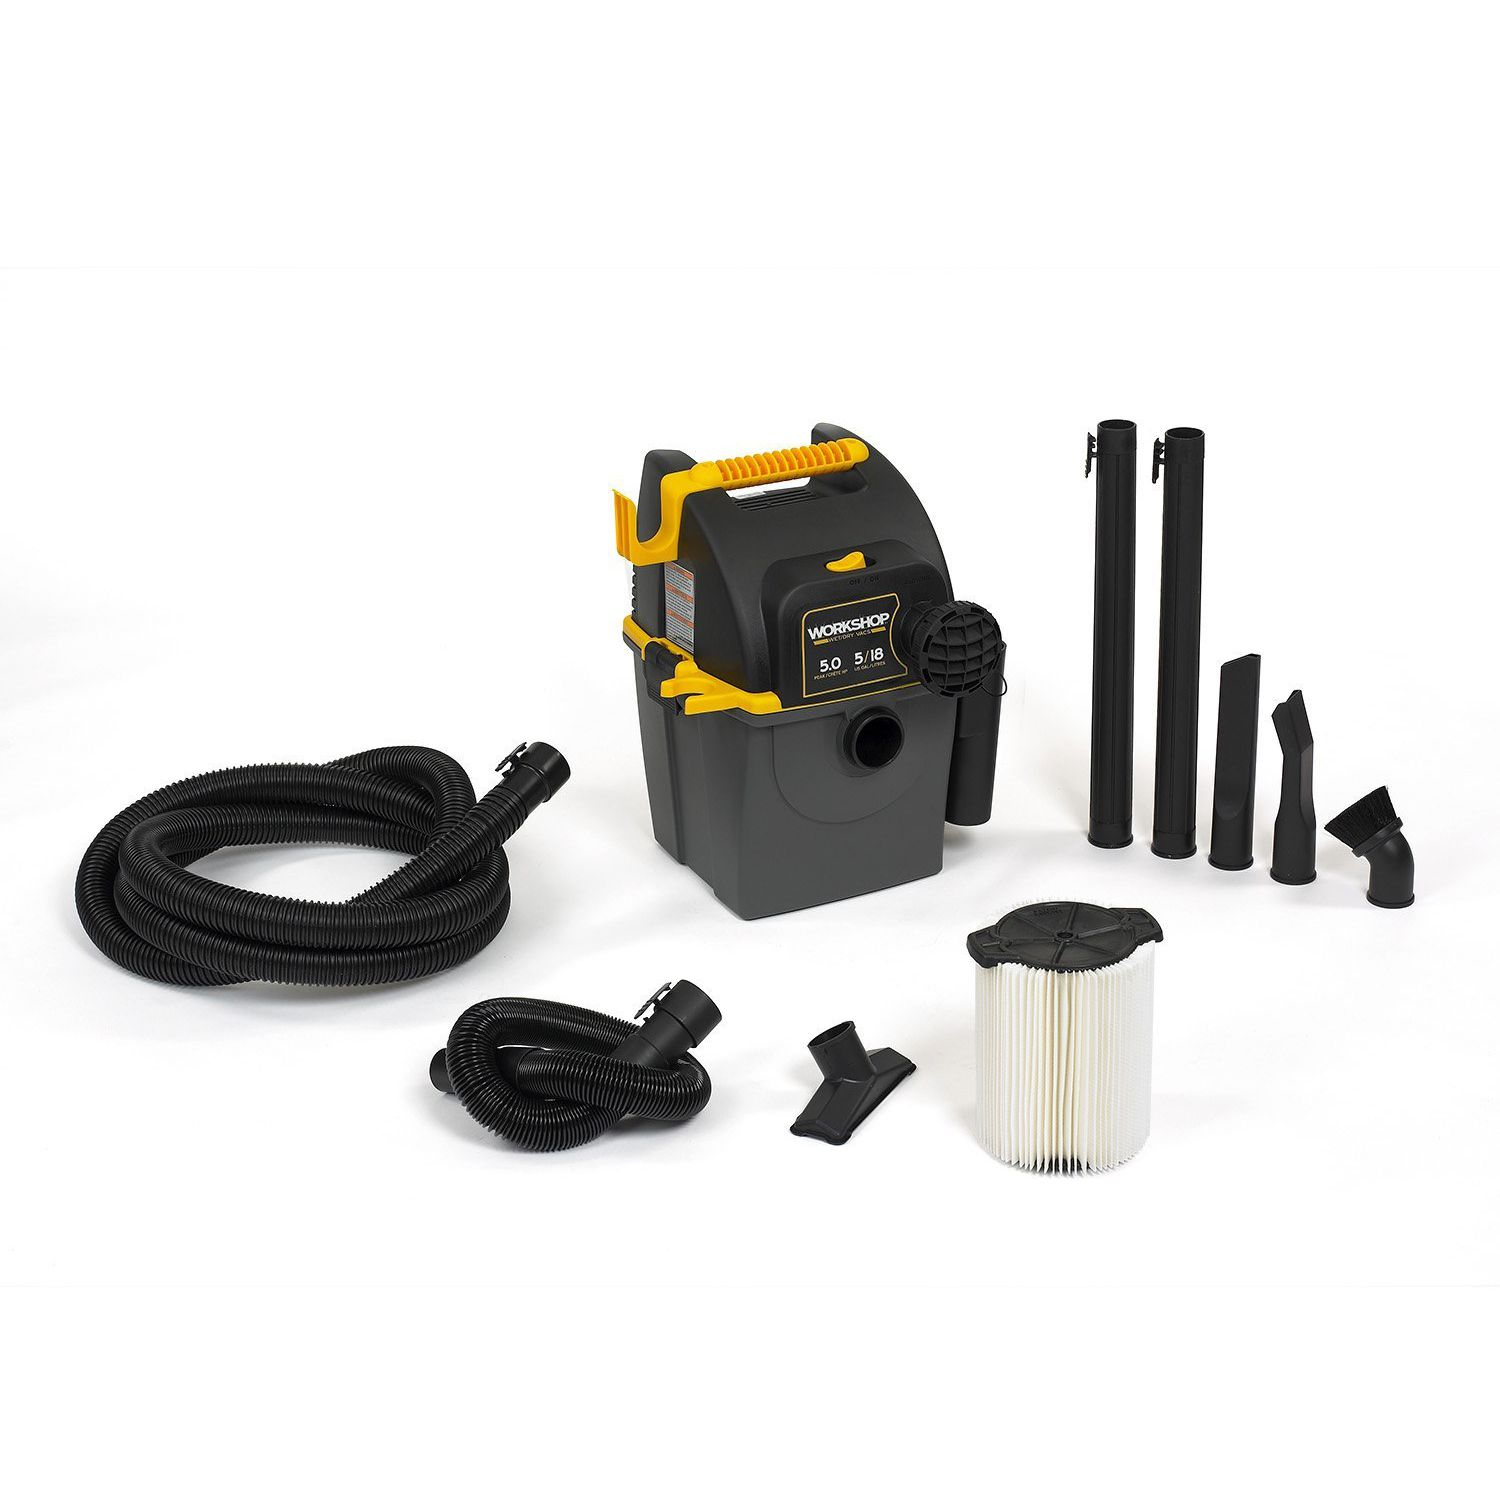 WORKSHOP WS0500WM Wall Mount Wet Dry Vacuum